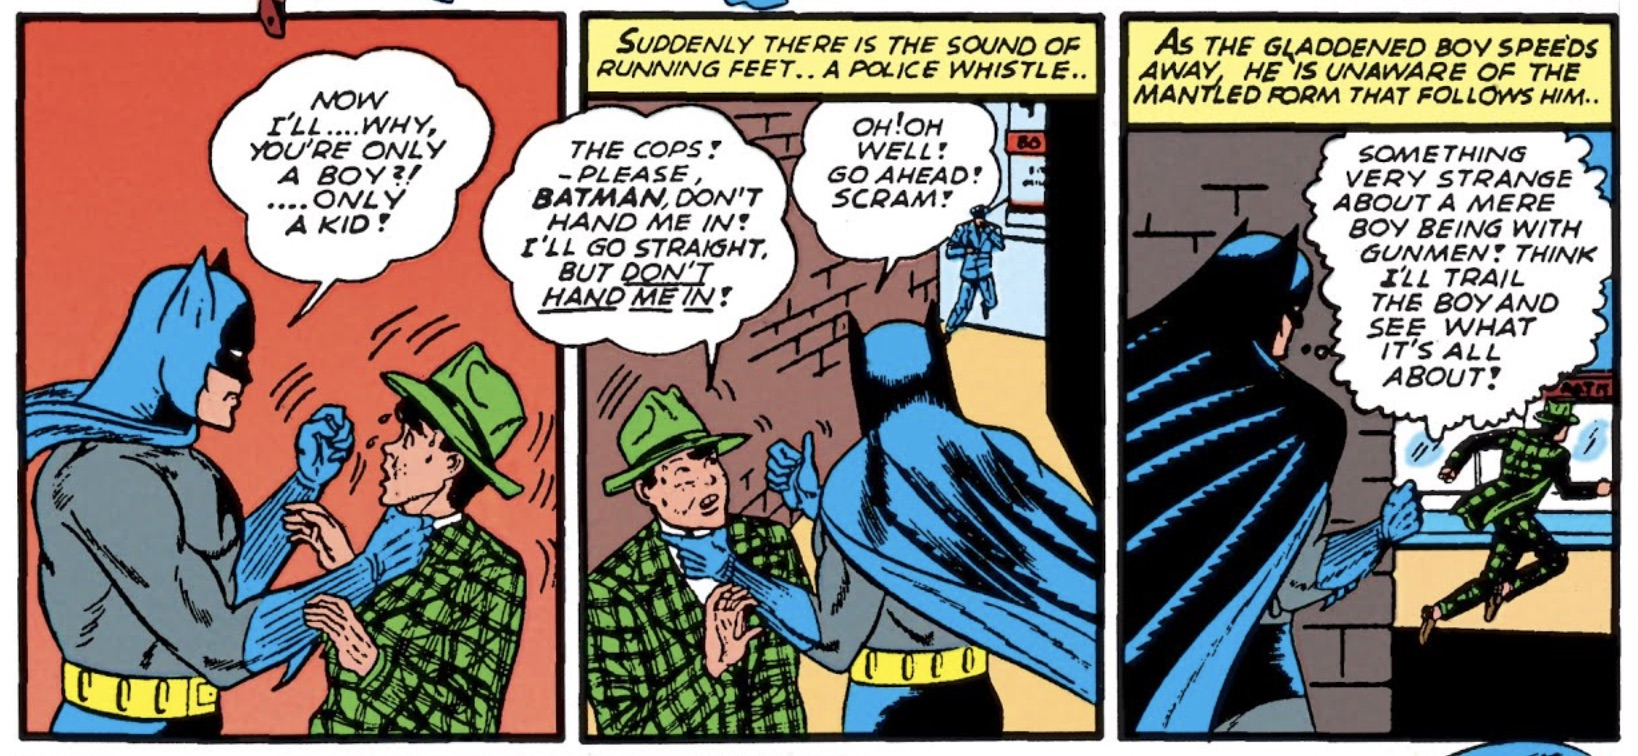 Batman scares children